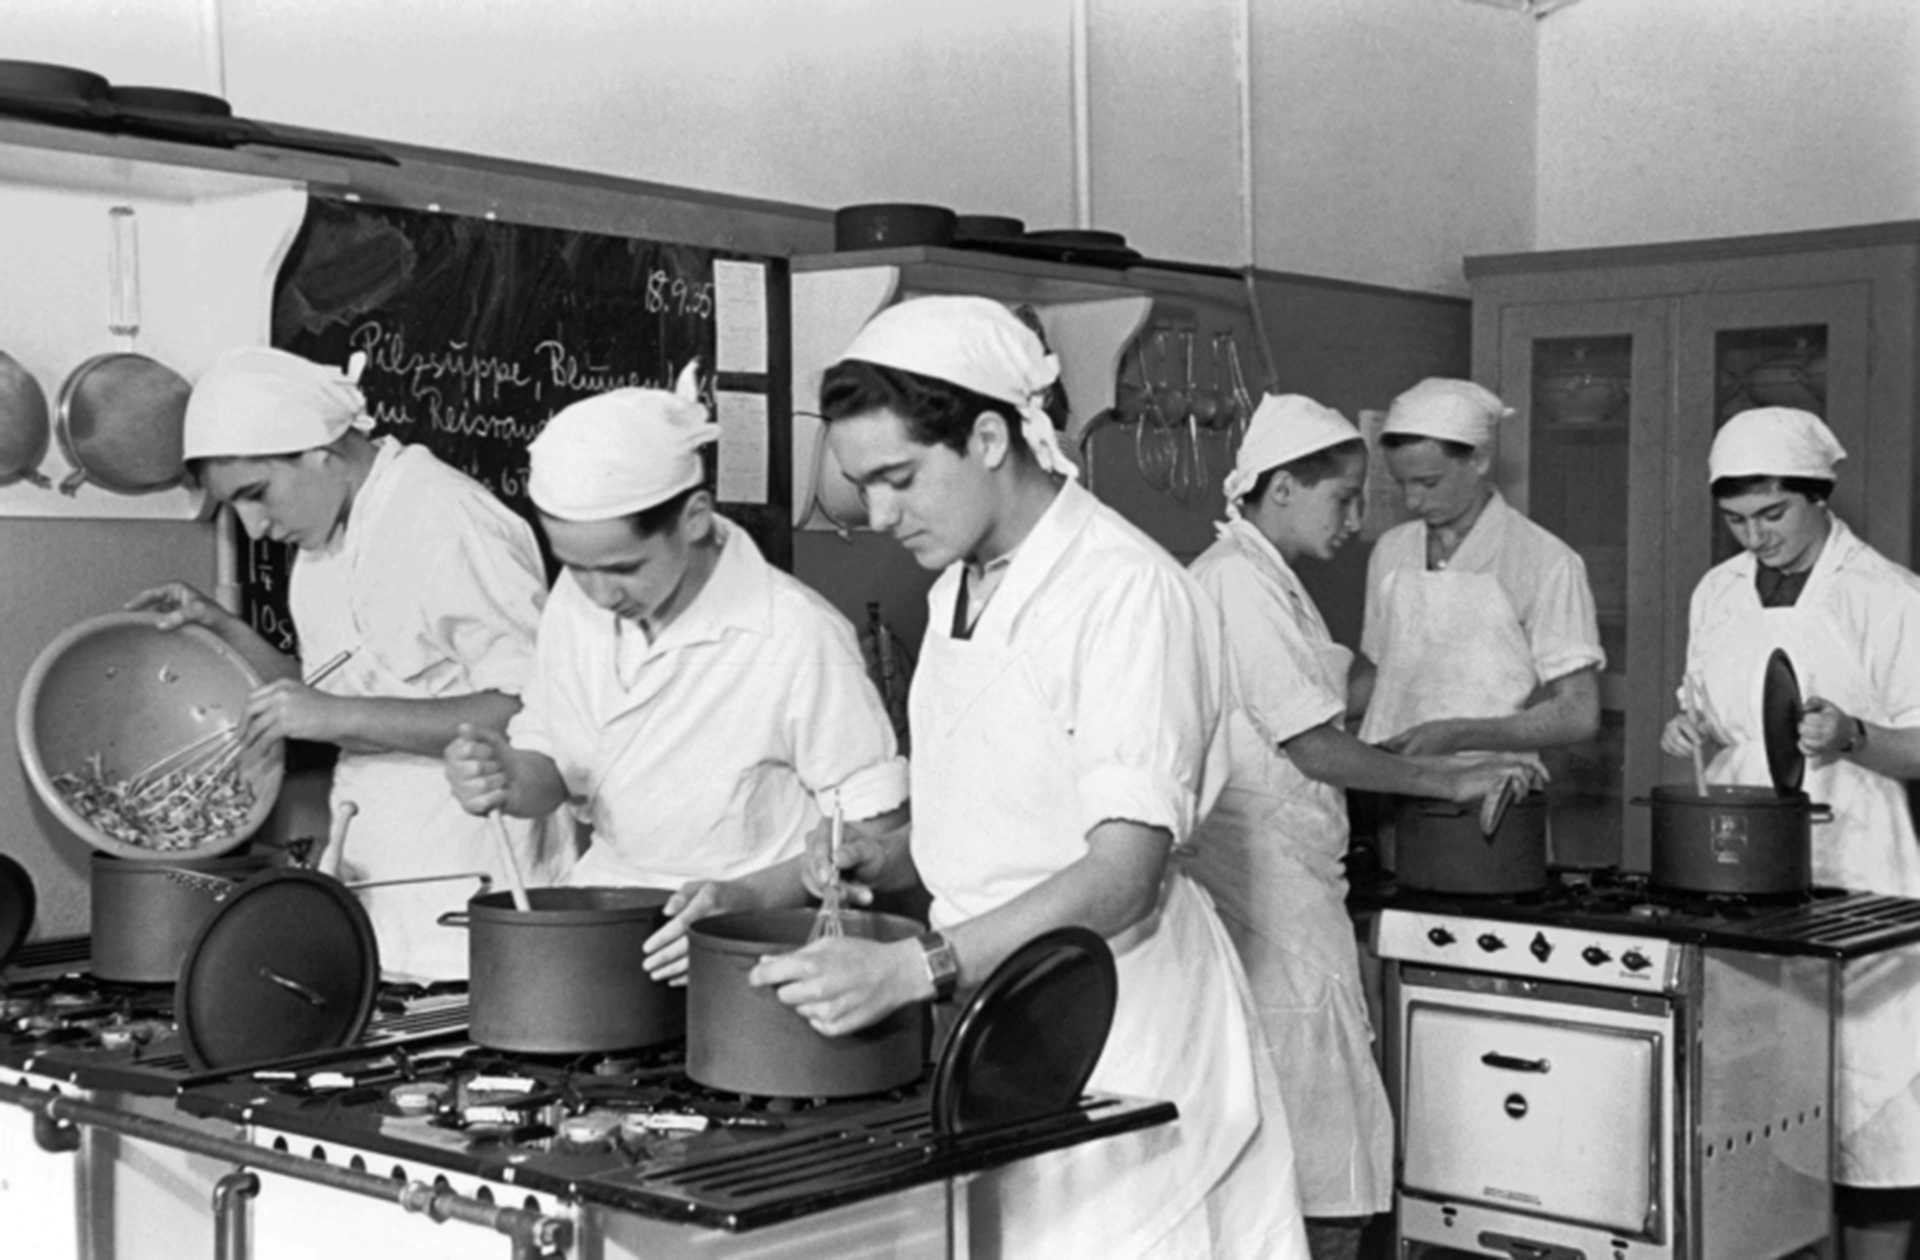 Black and white historical photograph of six students in a kitchen of the Theodor Herzl School, the students are wearing white aprons and white headscarves working hard at the stove cooking in pots